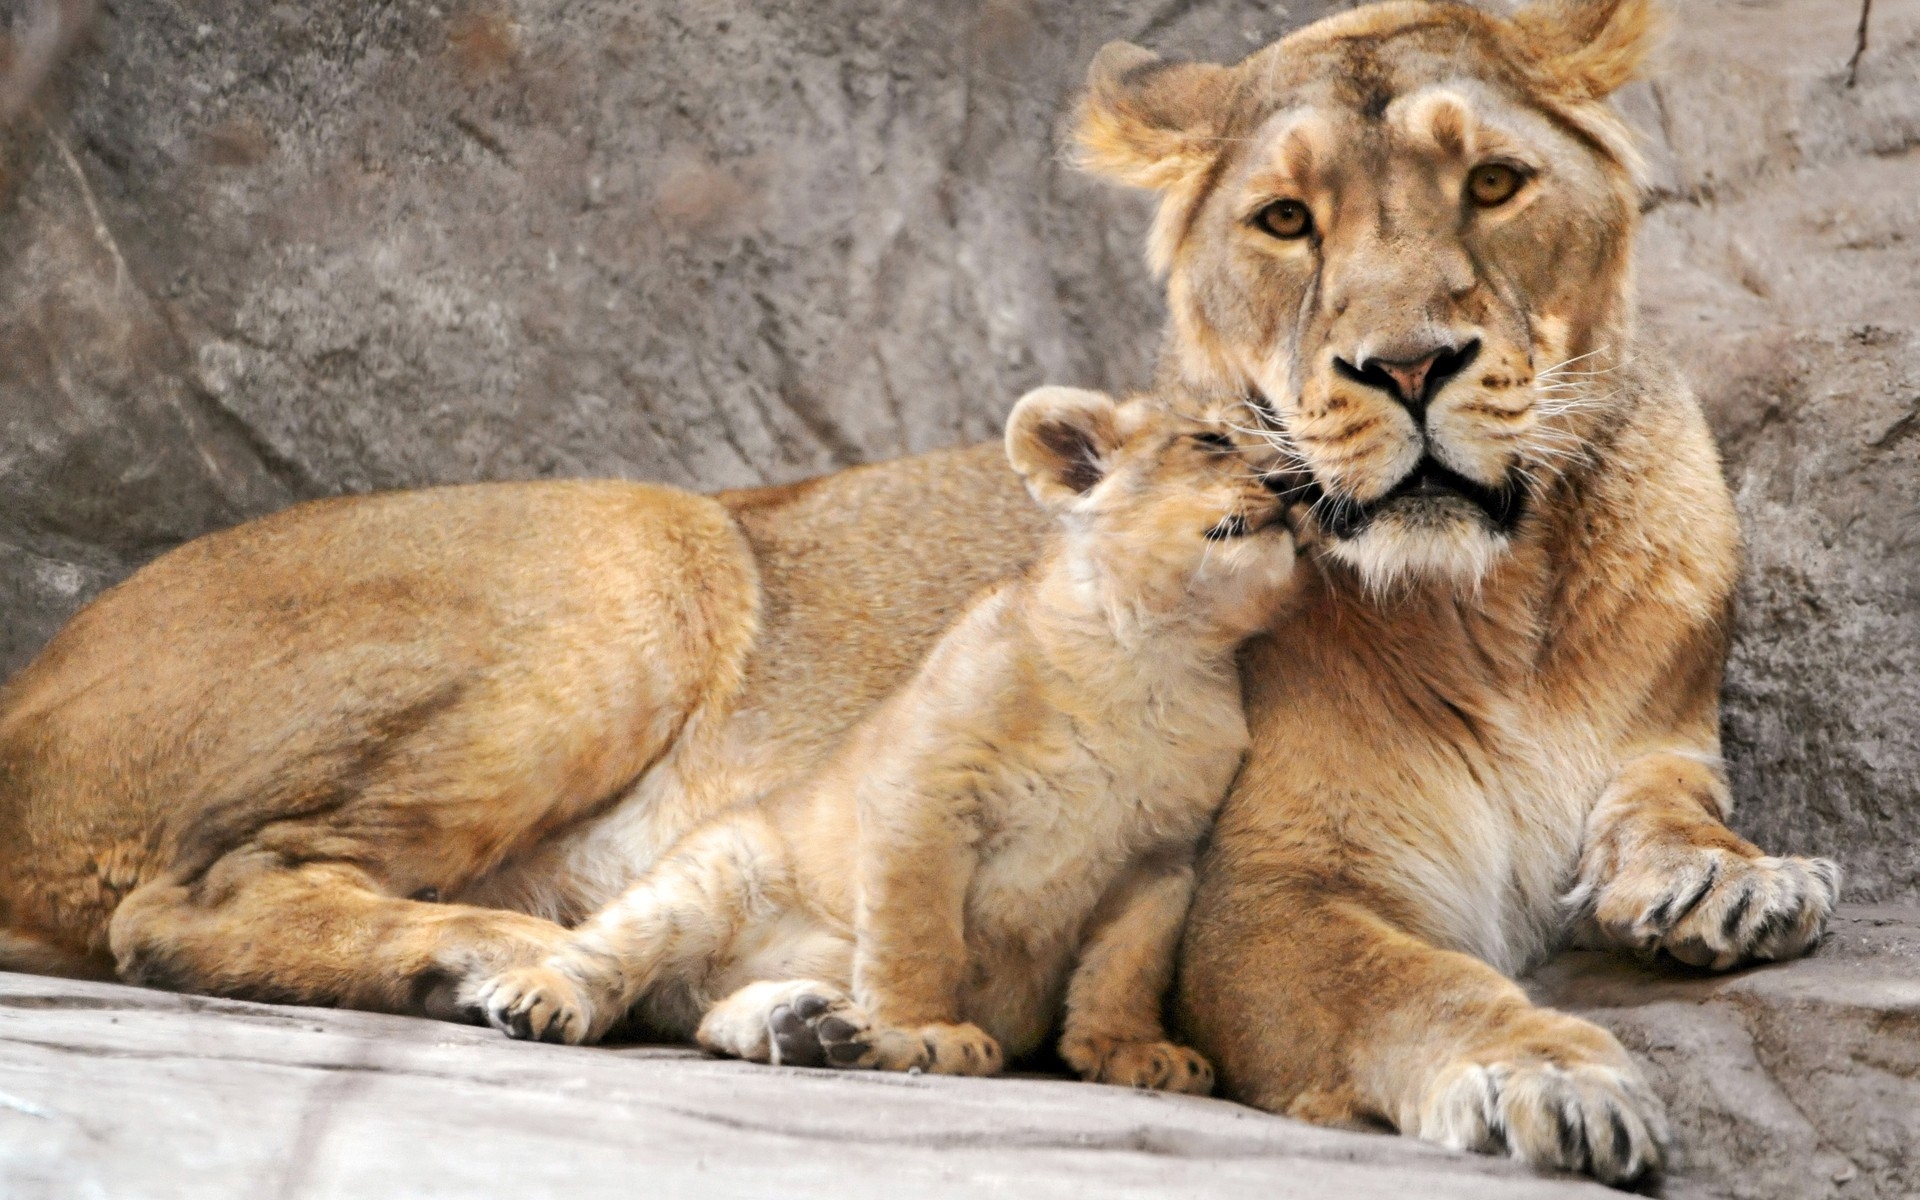 Cute_Lion_Child_Love_To_His_Mother_Lion_HD_Wallpapers.jpg